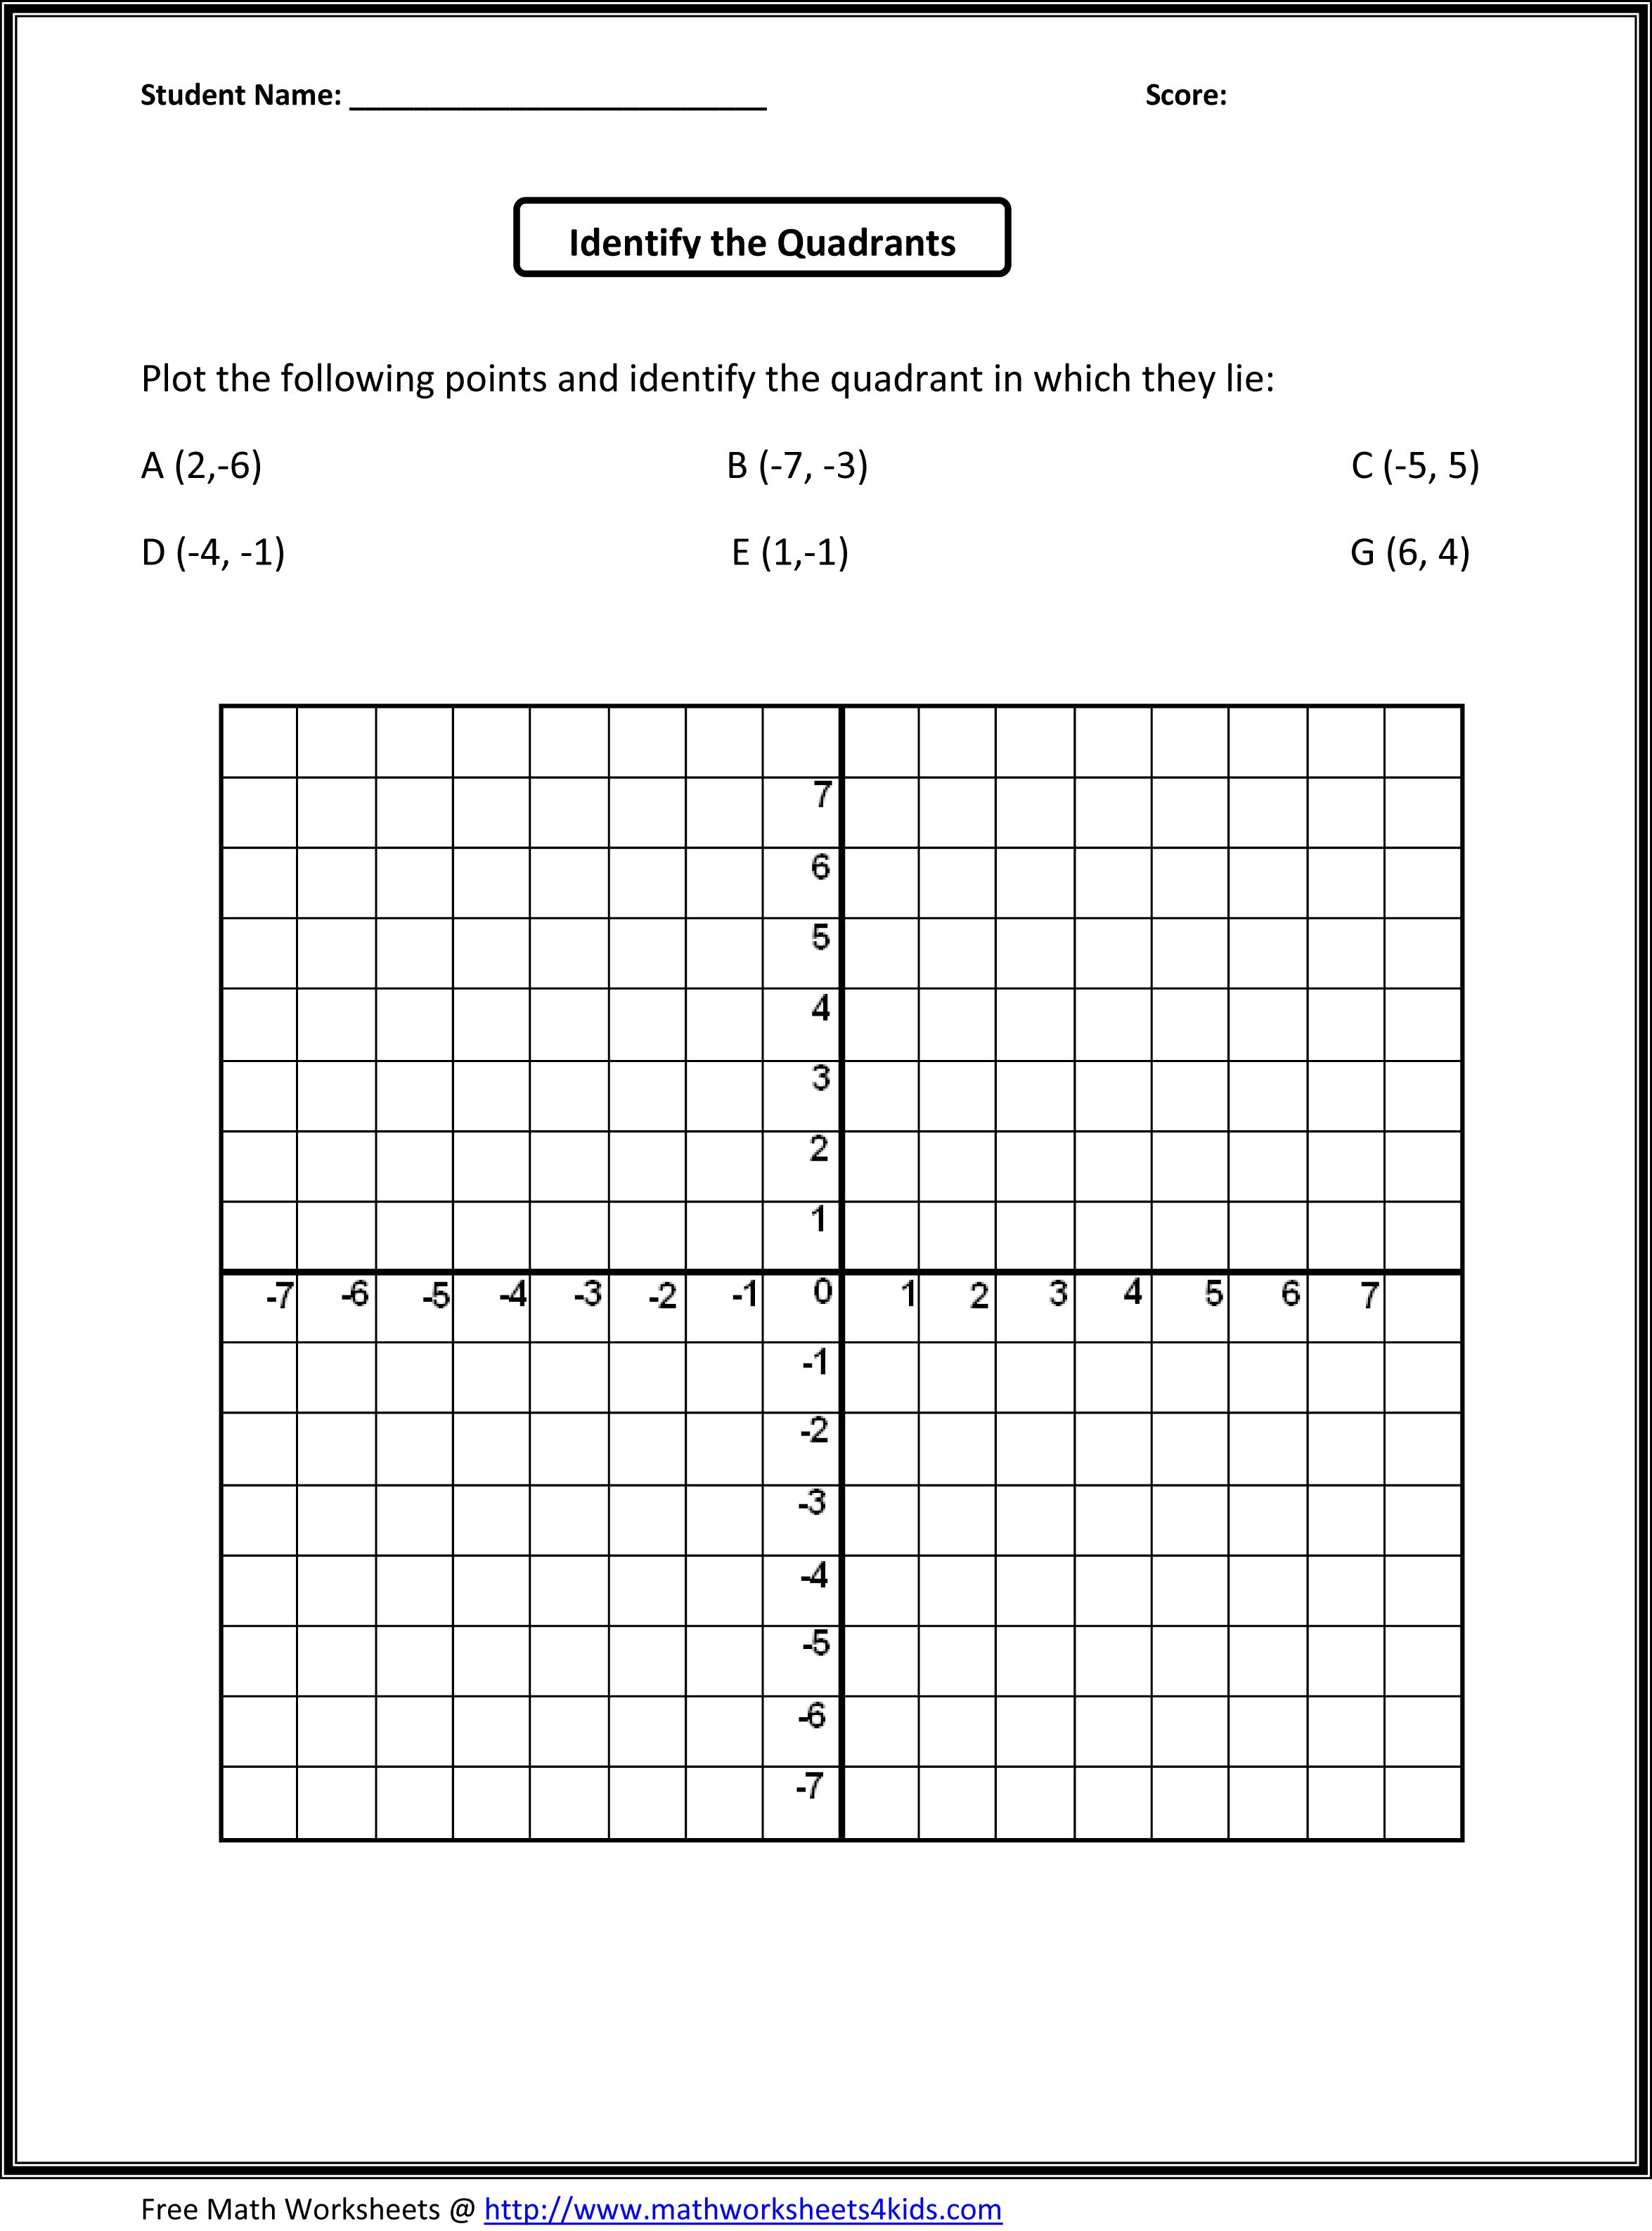 math worksheet : 1000 images about summer school on pinterest  5th grade math  : 5th Grade Maths Worksheets